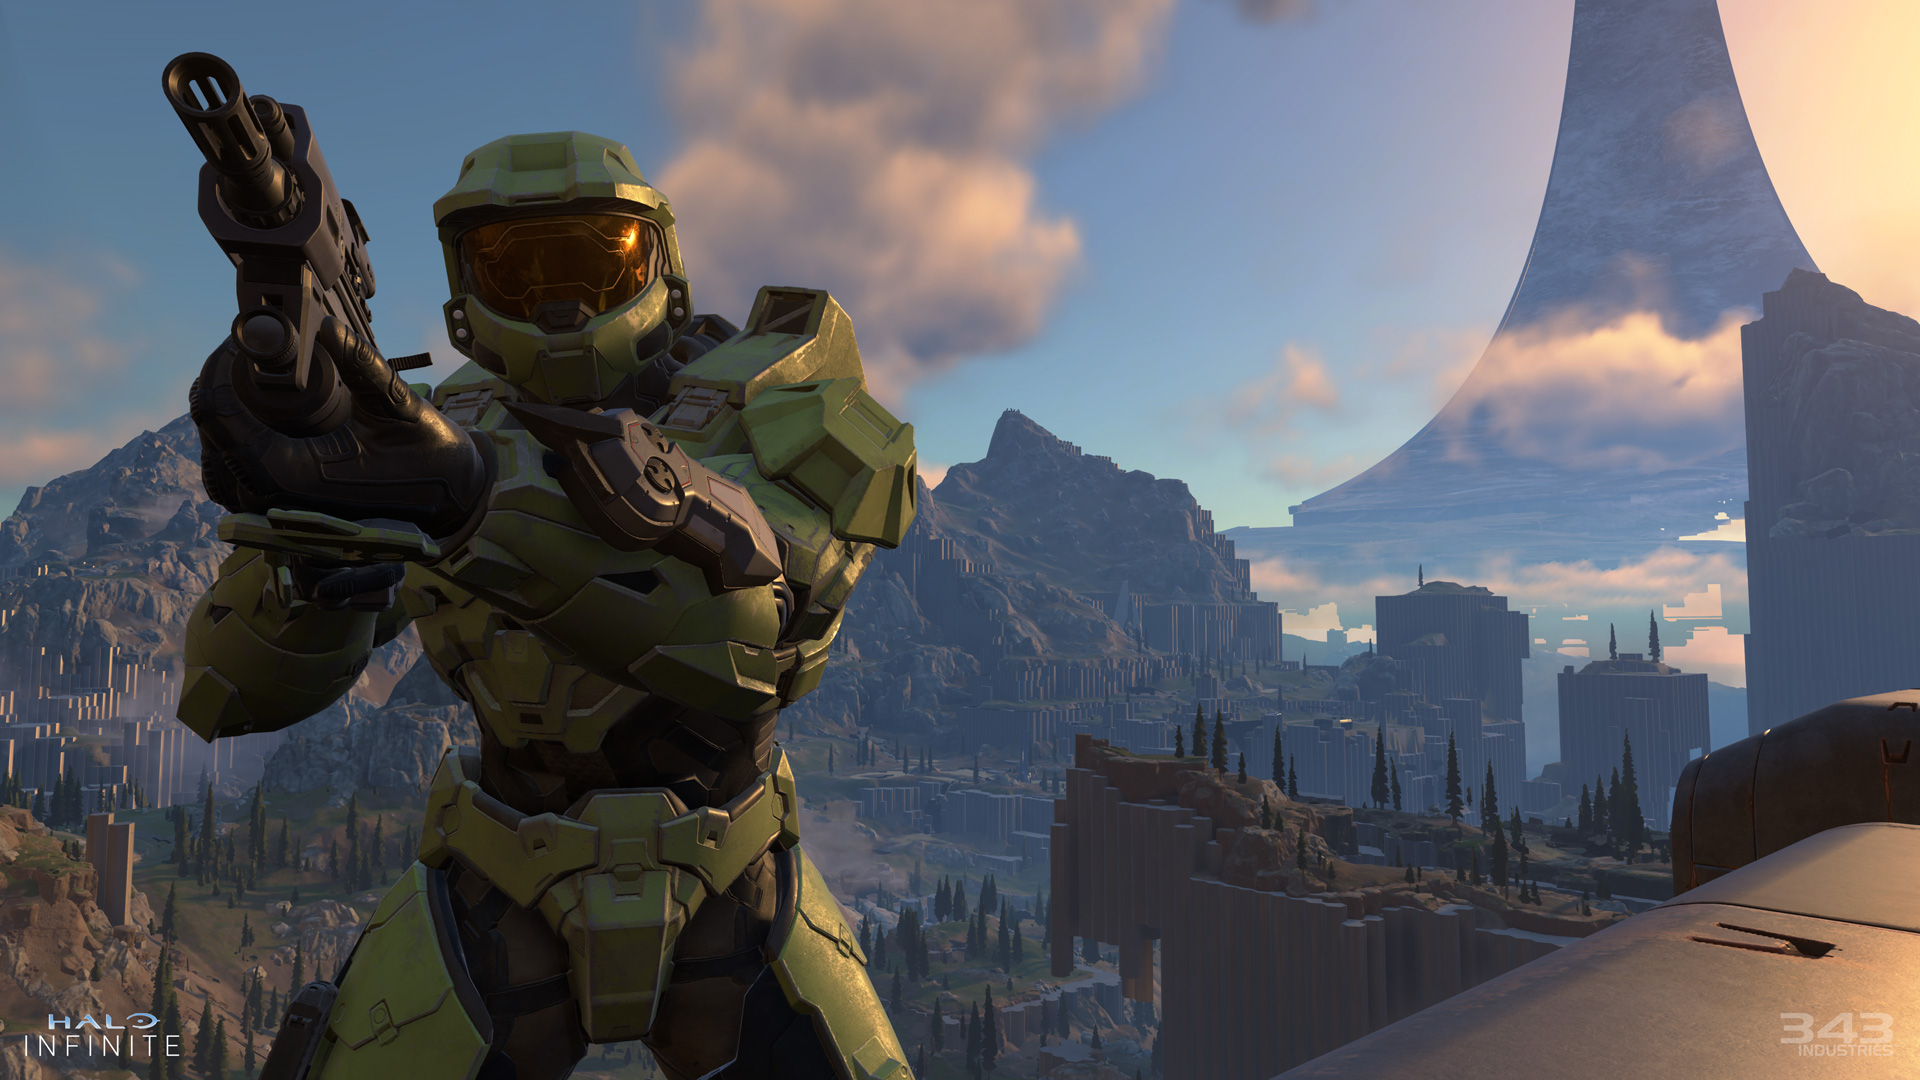 Master Chief aiming a gun while standing high up above a valley in Halo Infinite